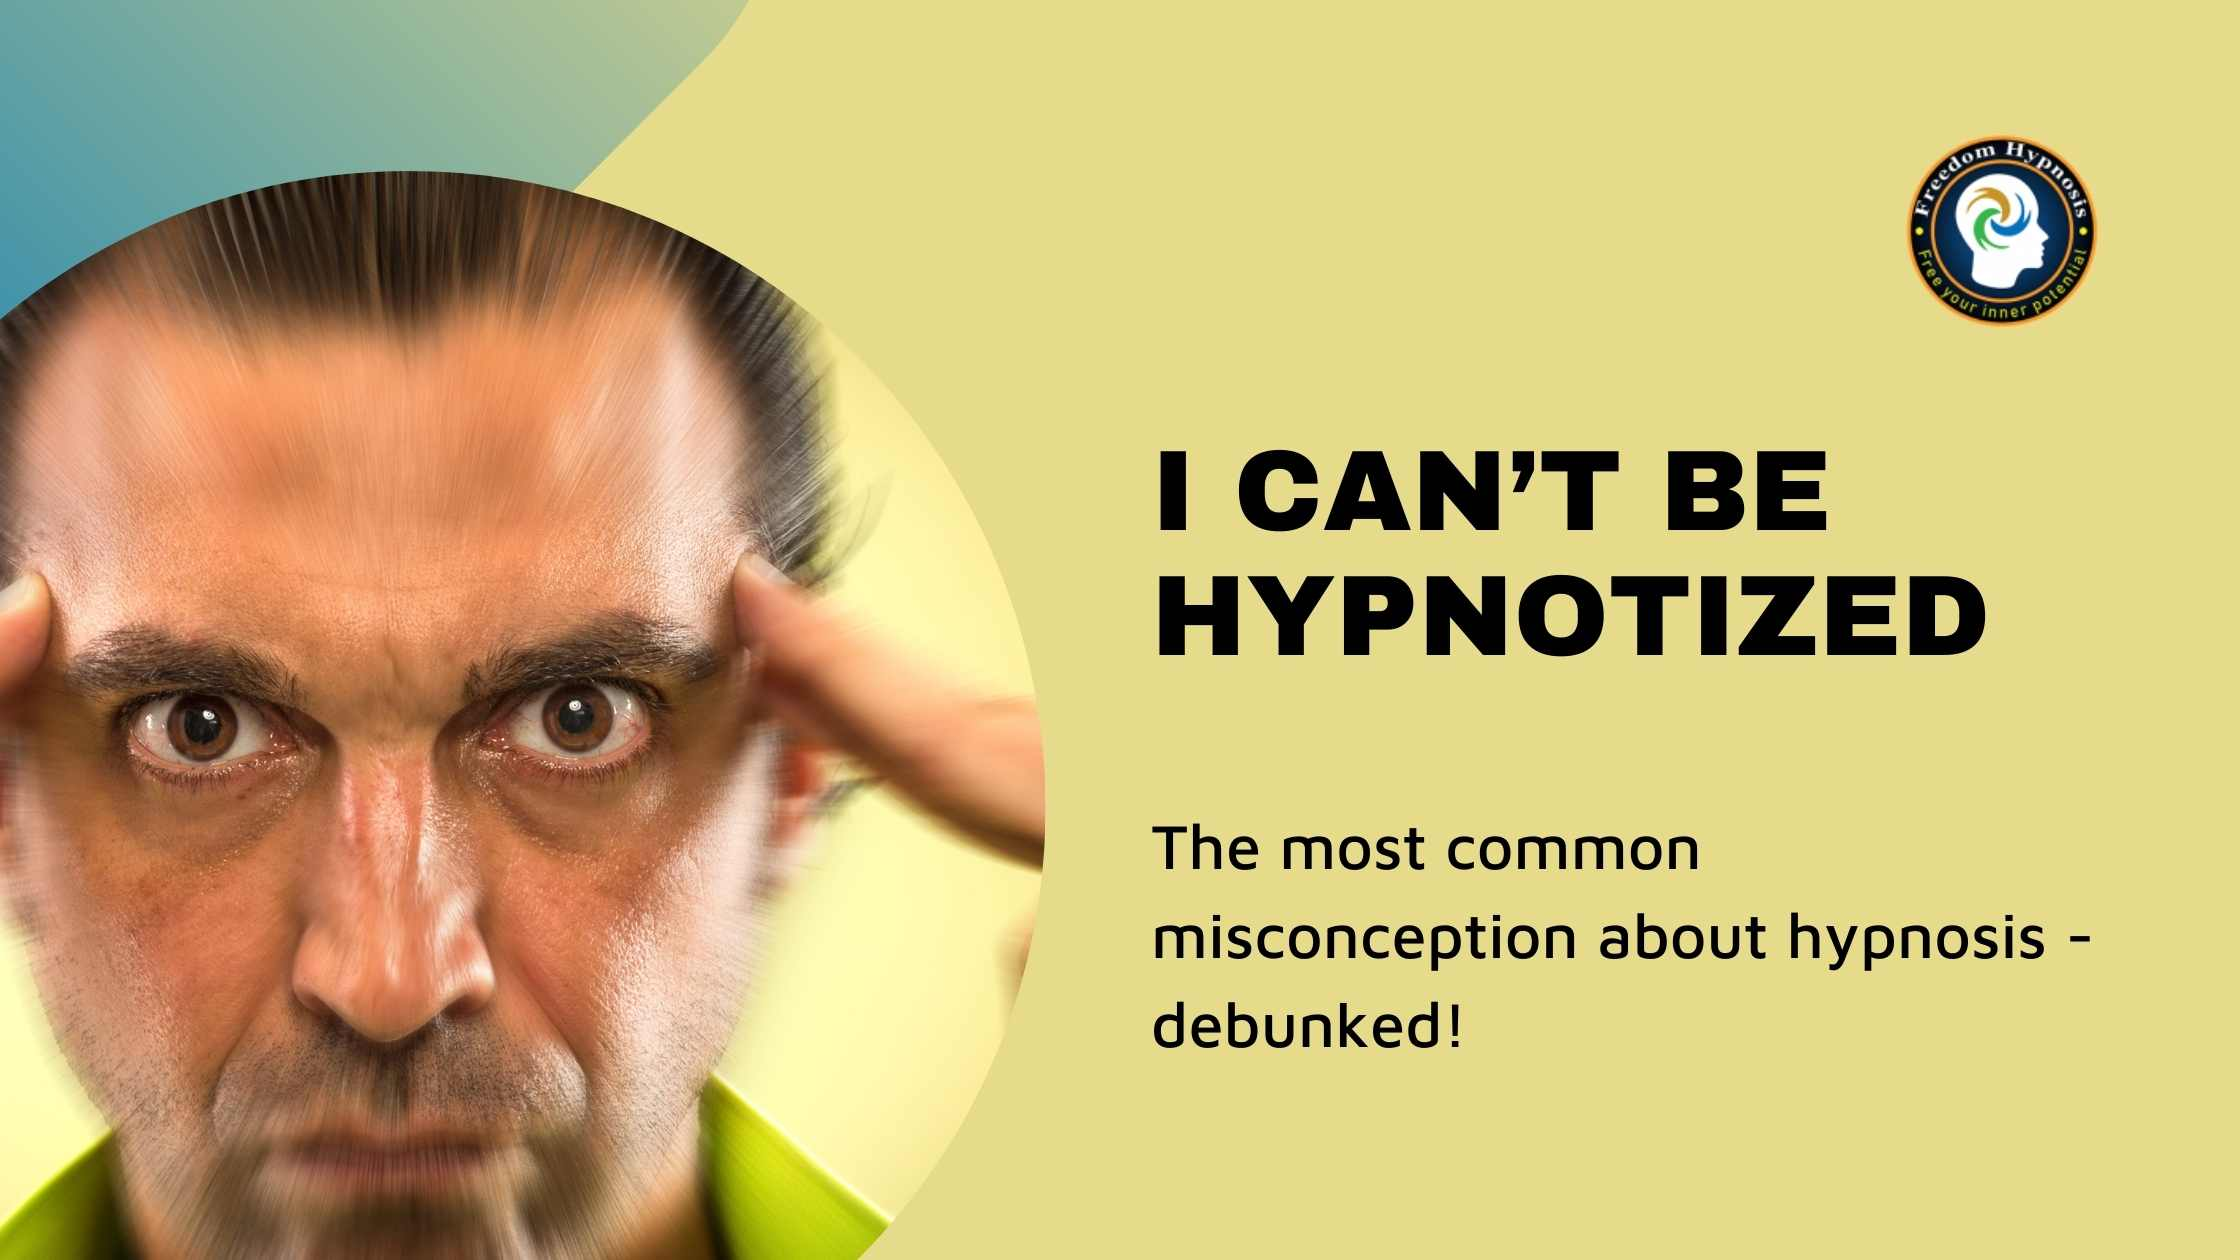 guy thinking i can't be hypnotized